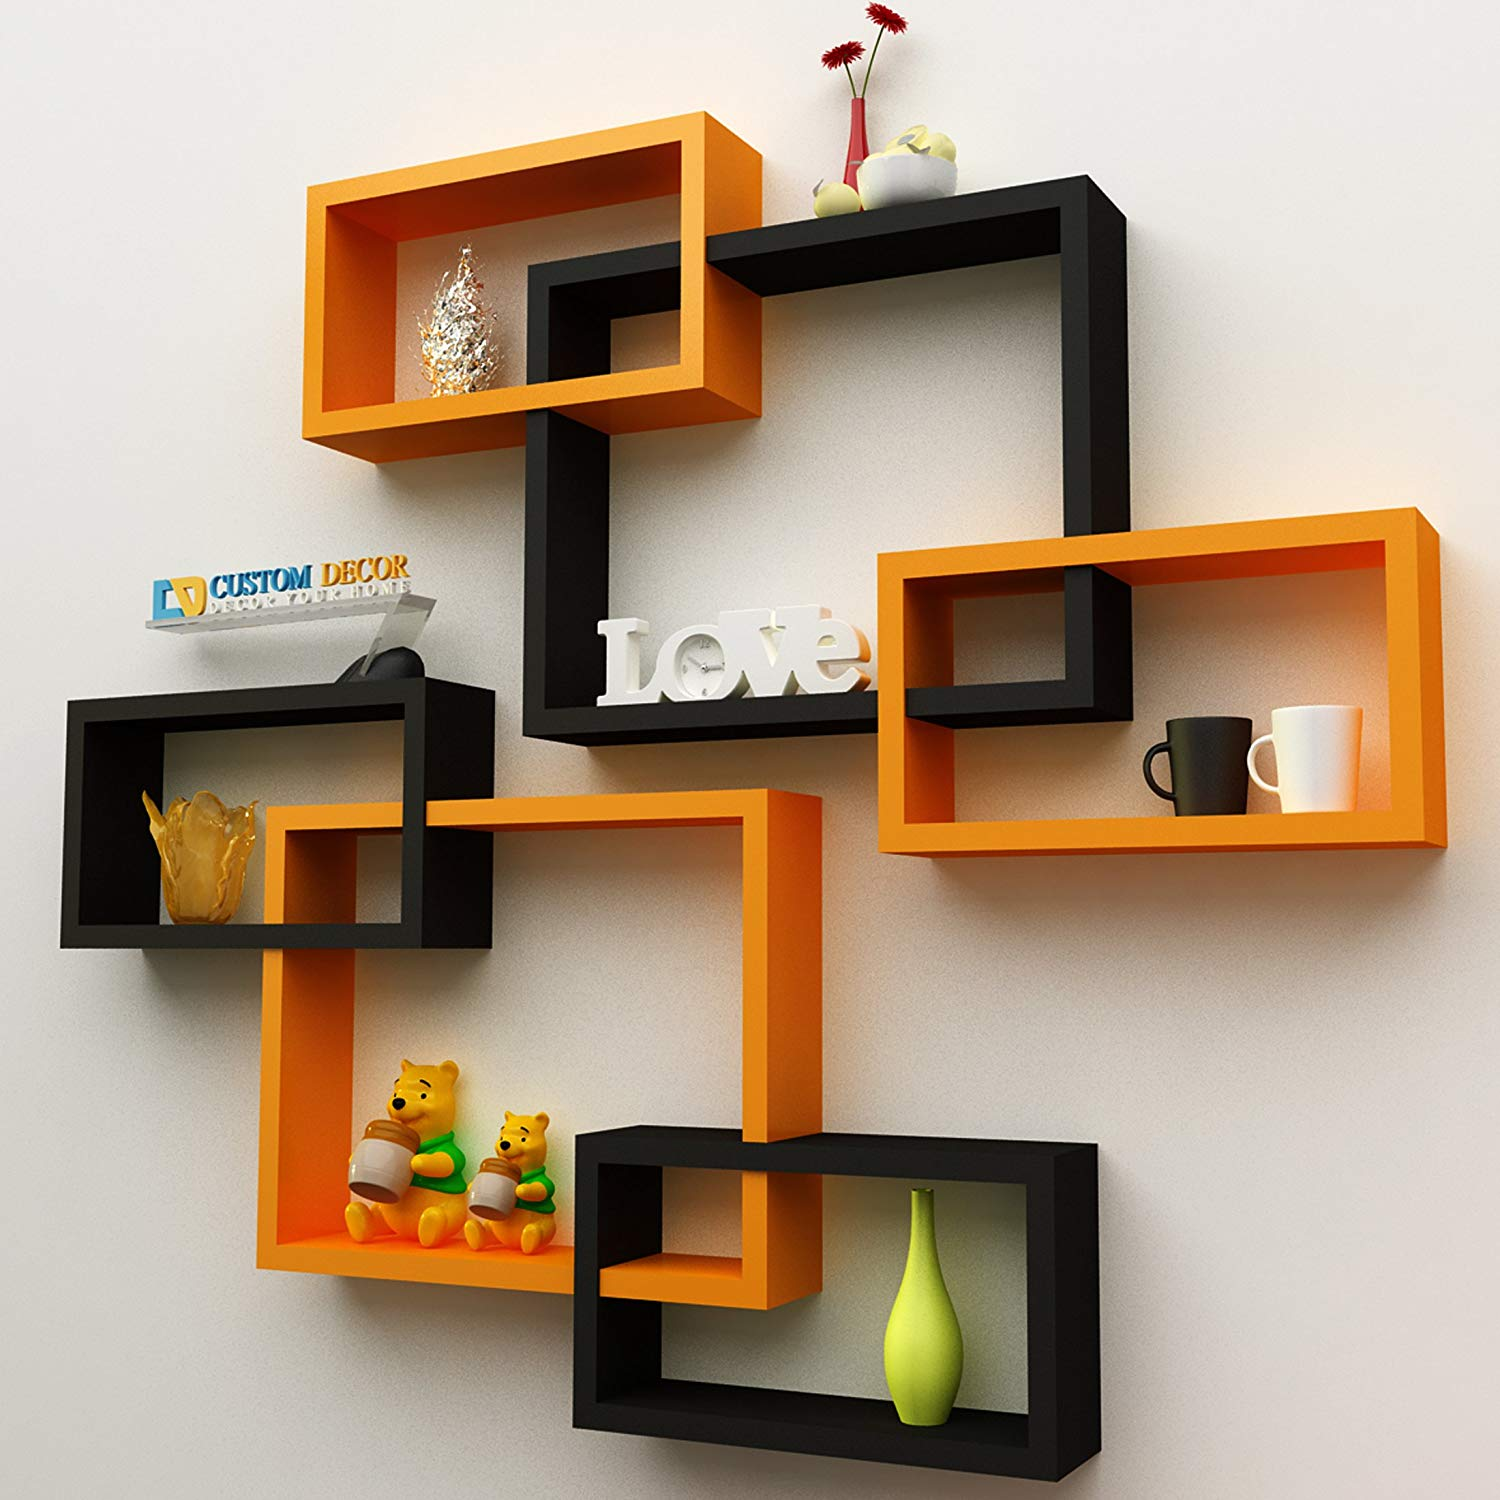 custom decor wall shelf rack set intersecting floating shelves giosup design tures storage for home orange black kitchen mitre melamine towel rail with fold down desk ikea rustic